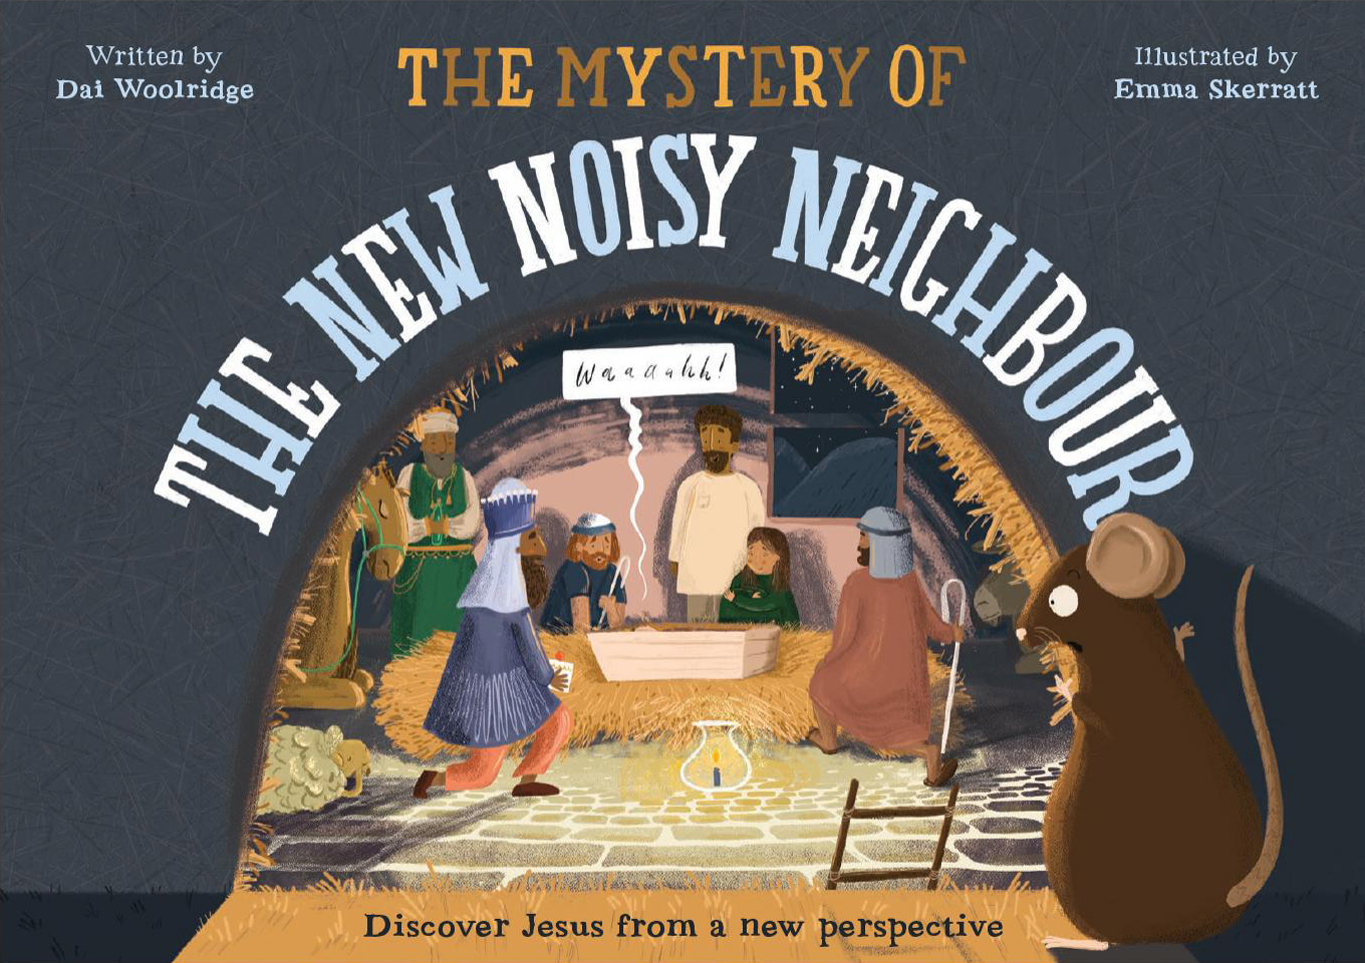 The Mystery of the New Noisy Neighbour